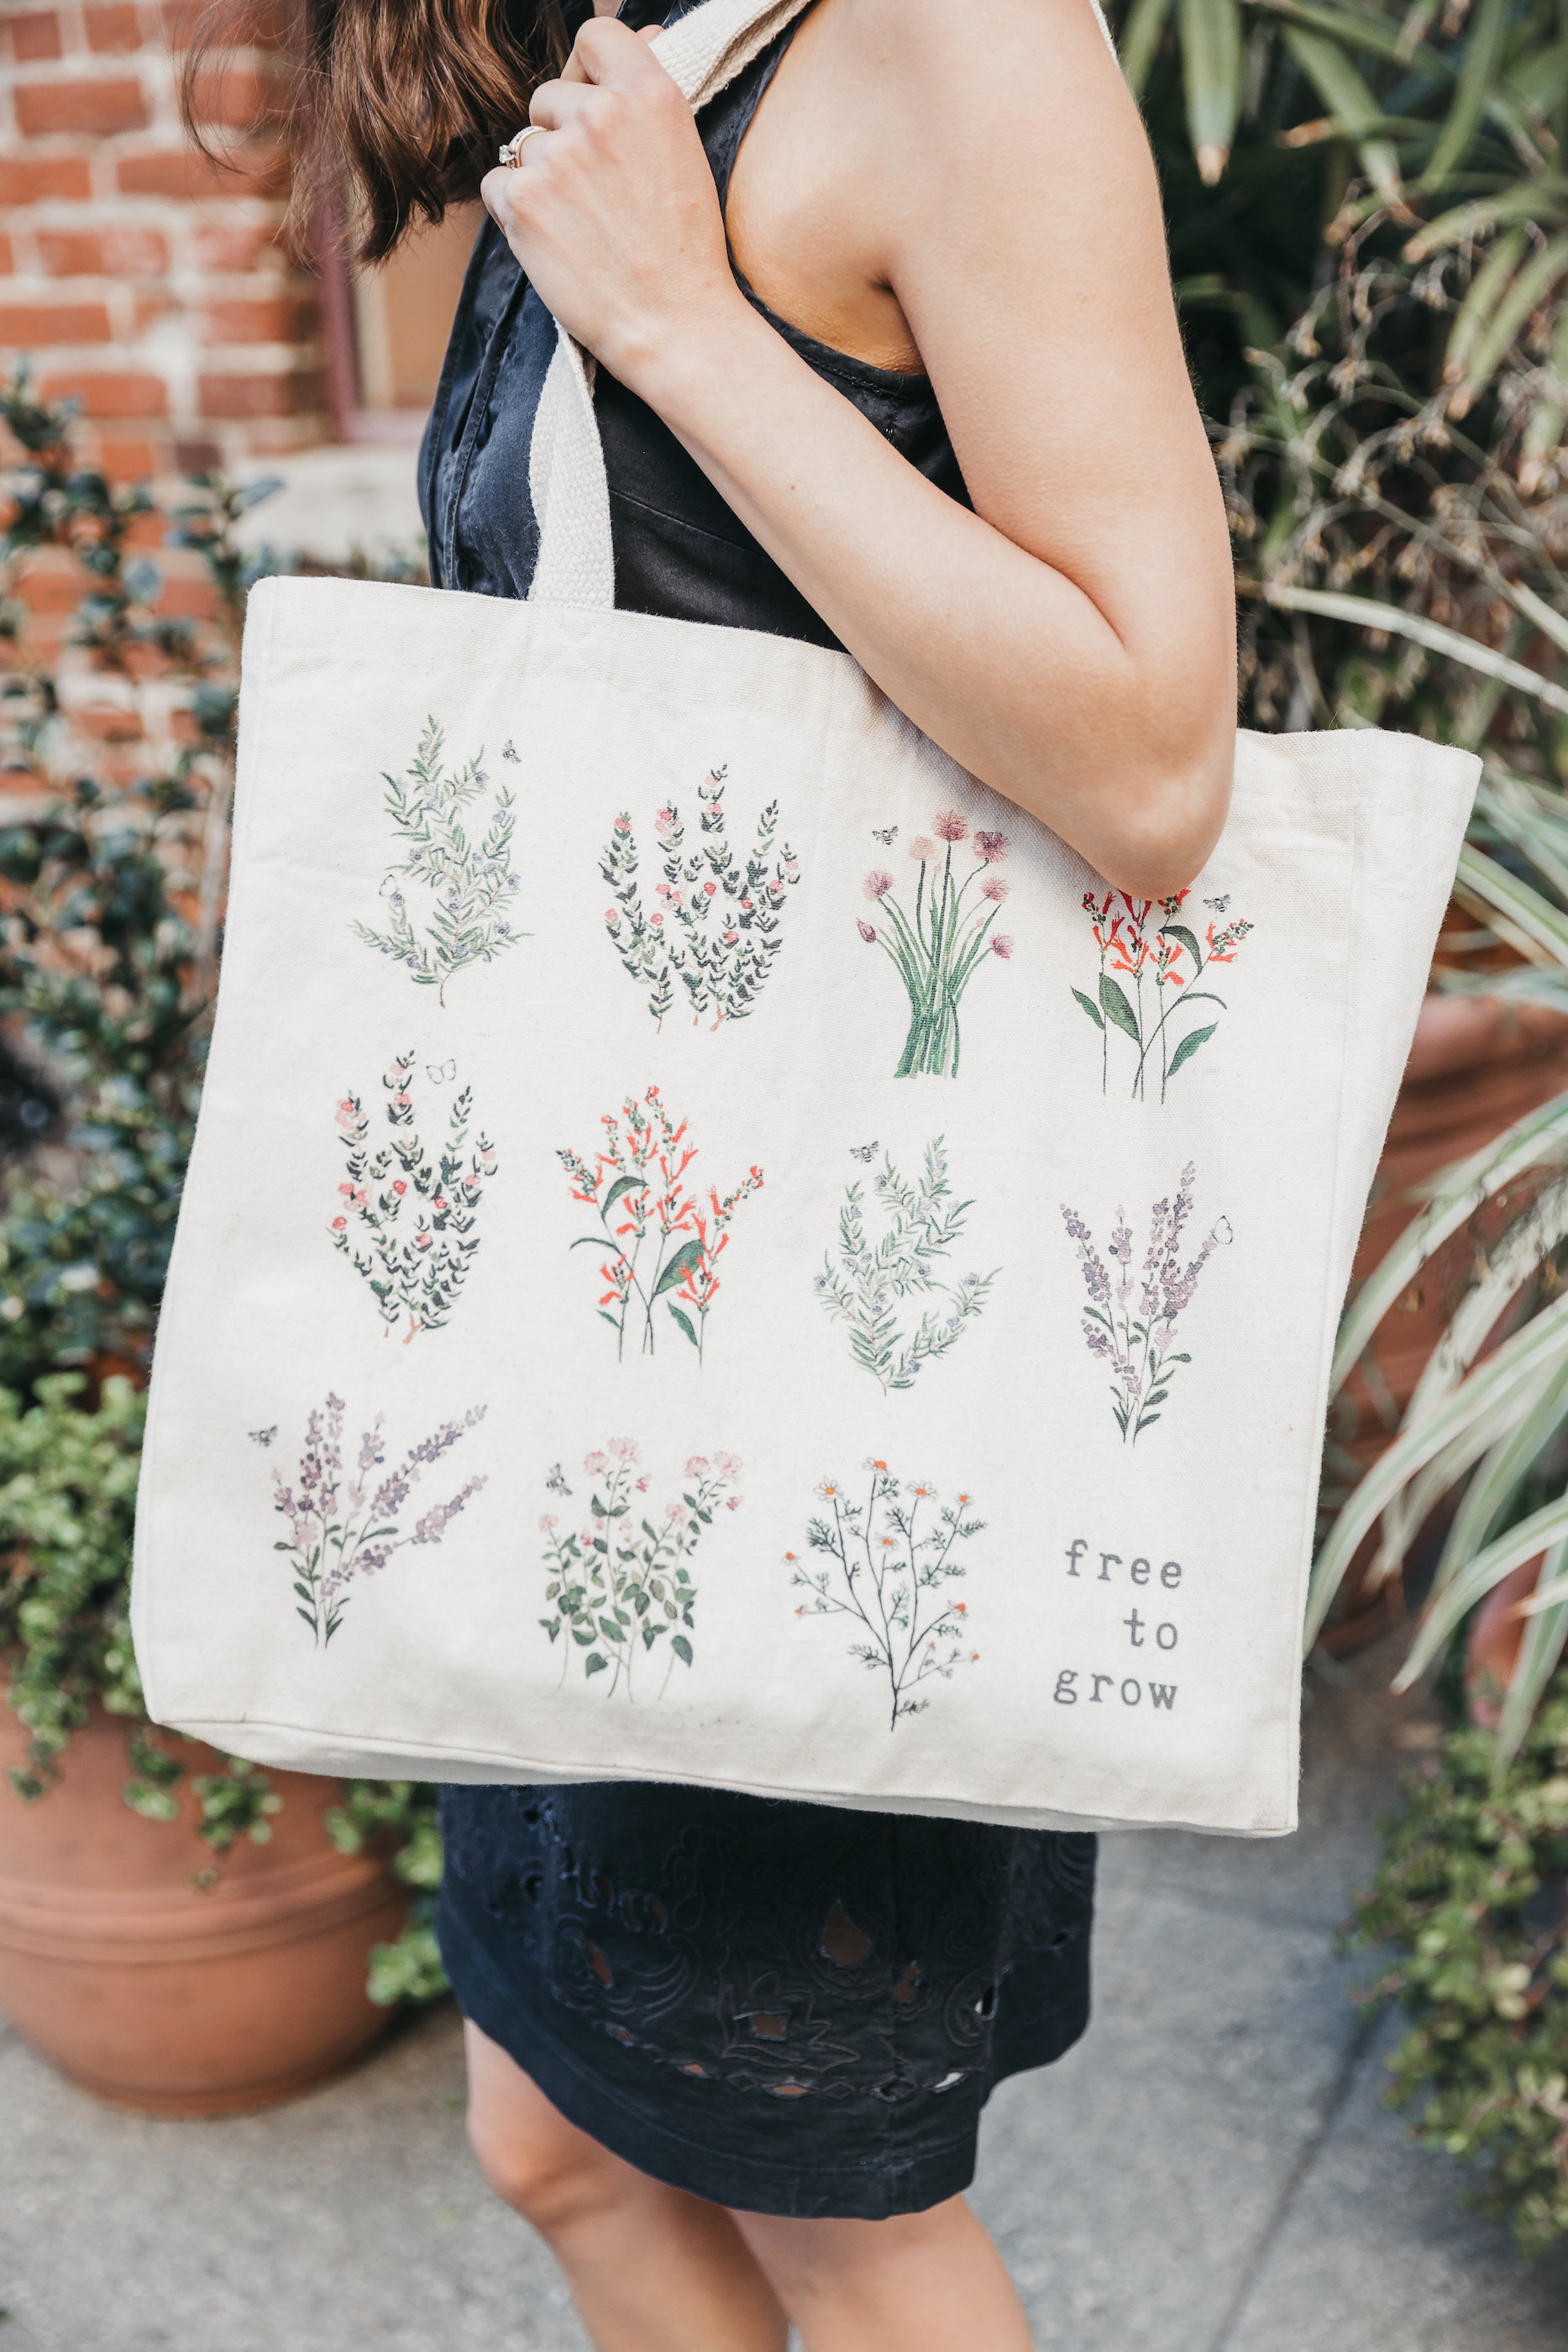 The Tote Project farmer's market tote // A Week Of Bright & Bold Ethical Outfits With Michelle Chavez From Michelle For Good on The Good Trade